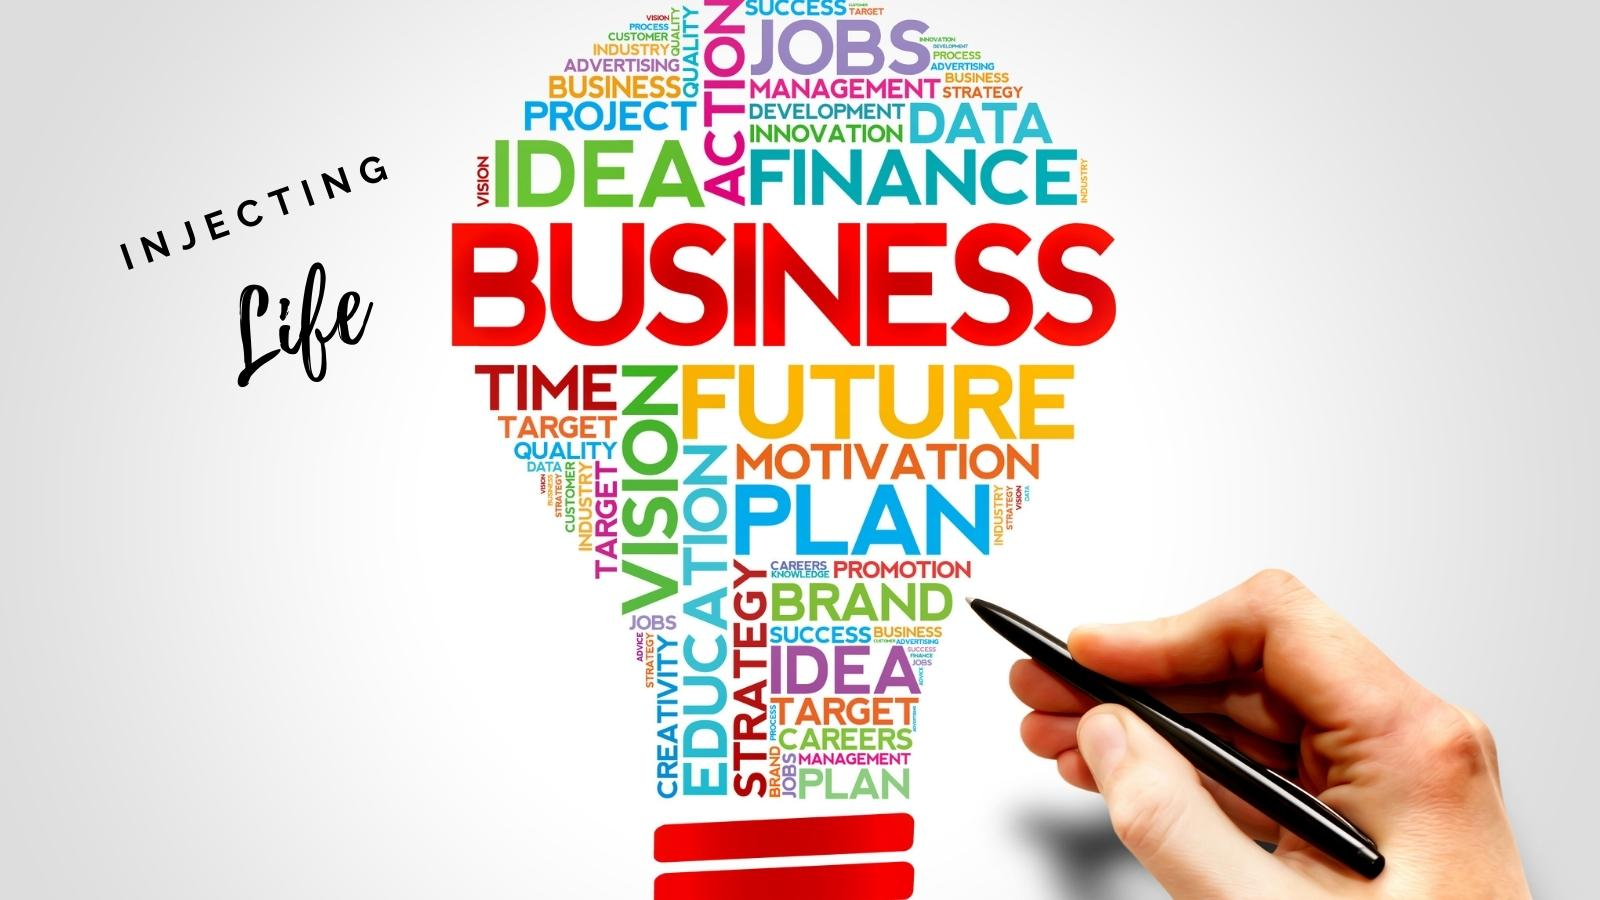 injecting life into your business